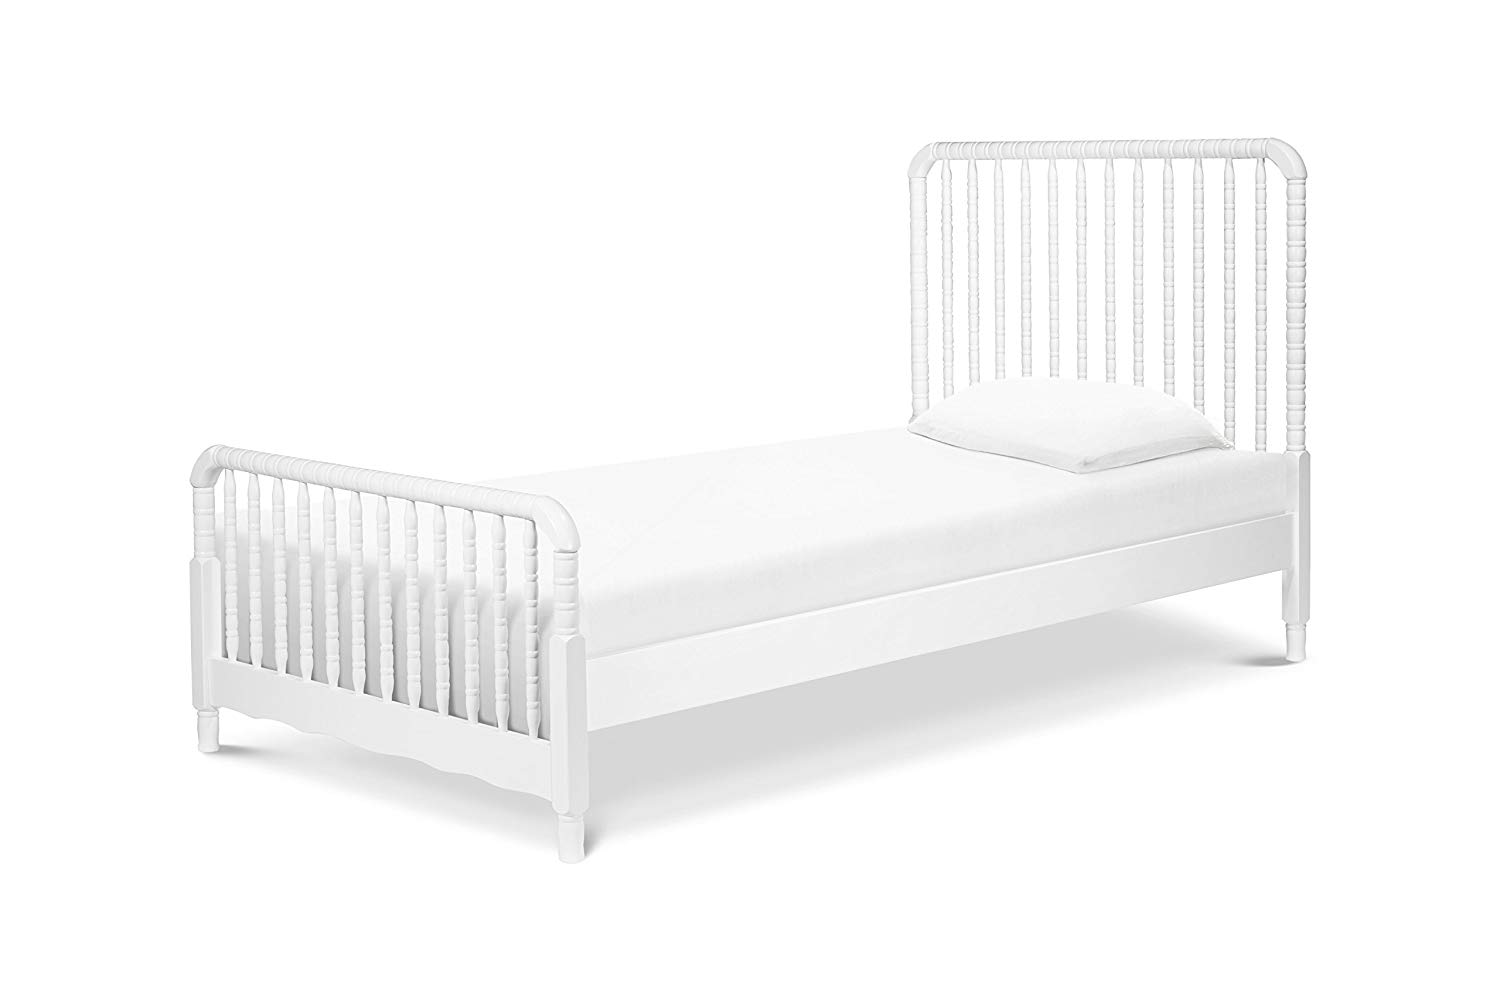 b0ead7441559 Get Quotations · DaVinci Jenny Lind Twin Bed with Wood Spindle Posts